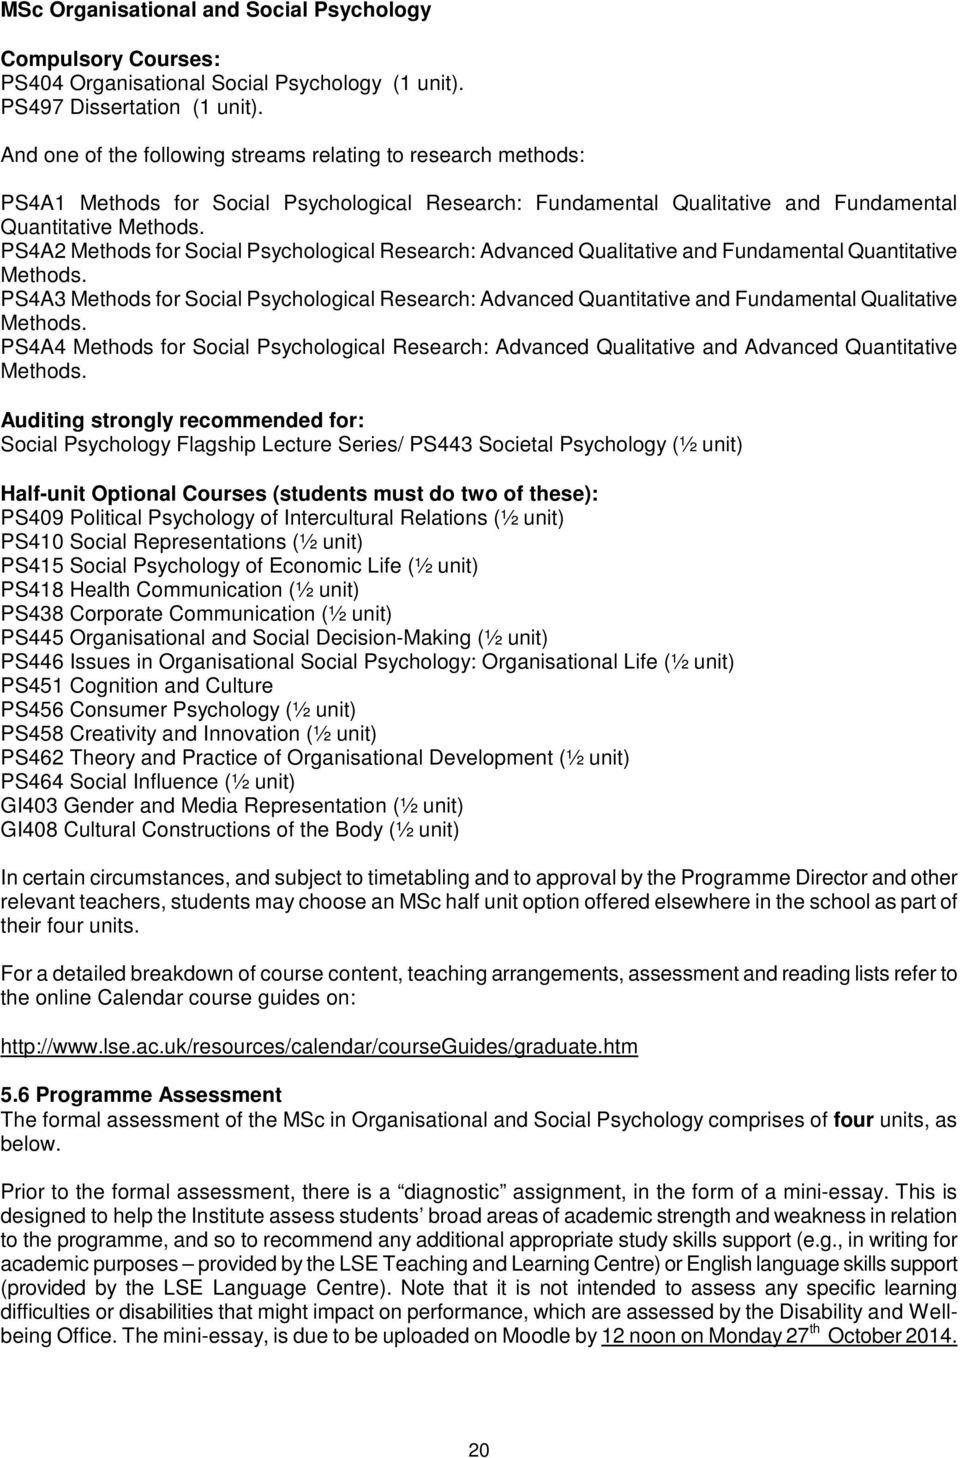 PS4A2 Methods for Social Psychological Research: Advanced Qualitative and Fundamental Quantitative Methods.